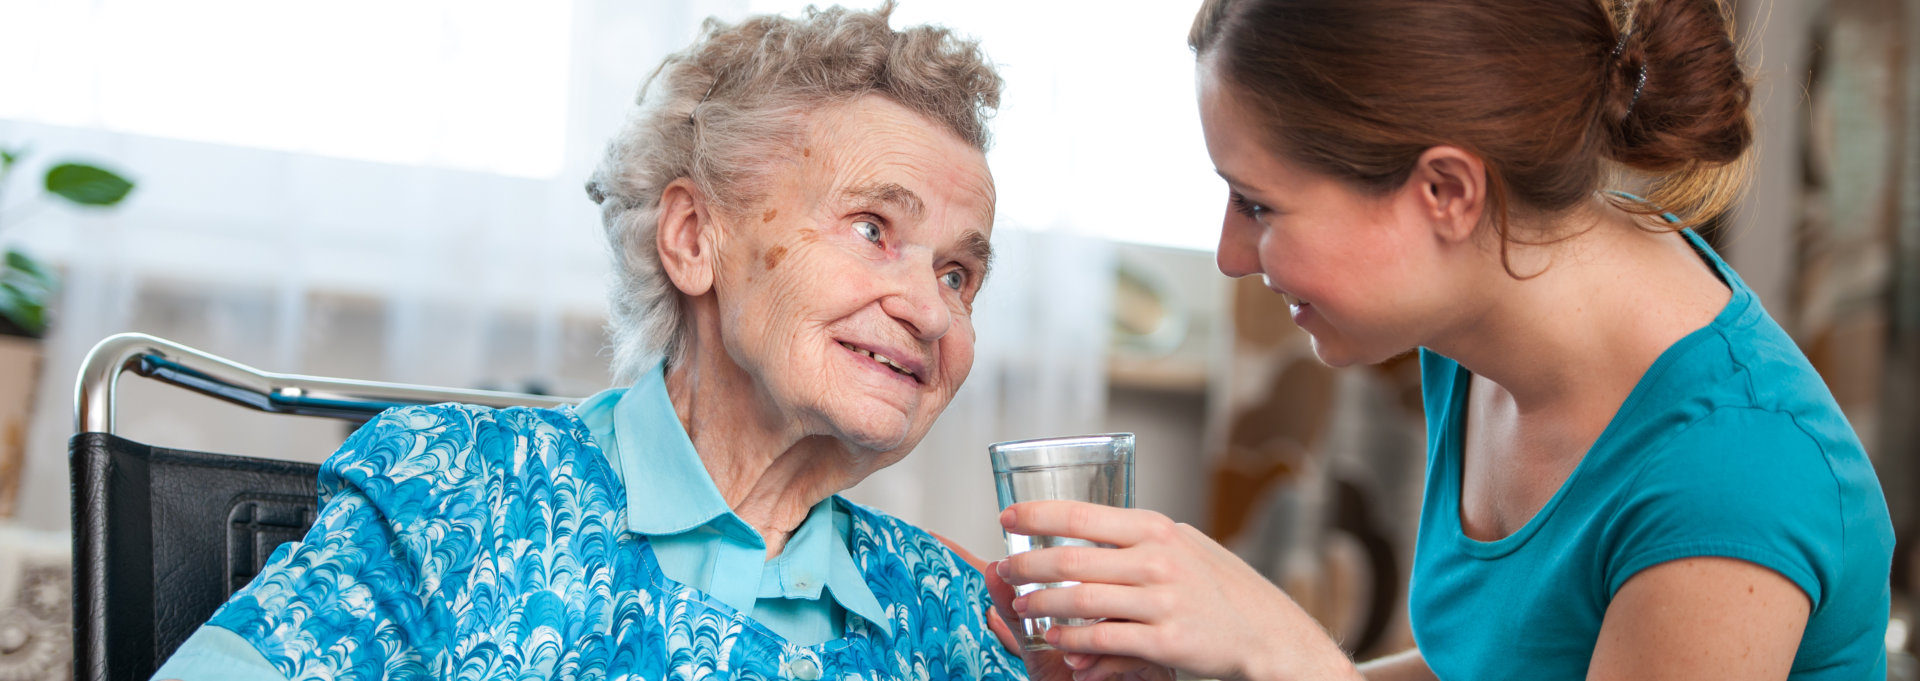 Caregiver gave water to the old woman